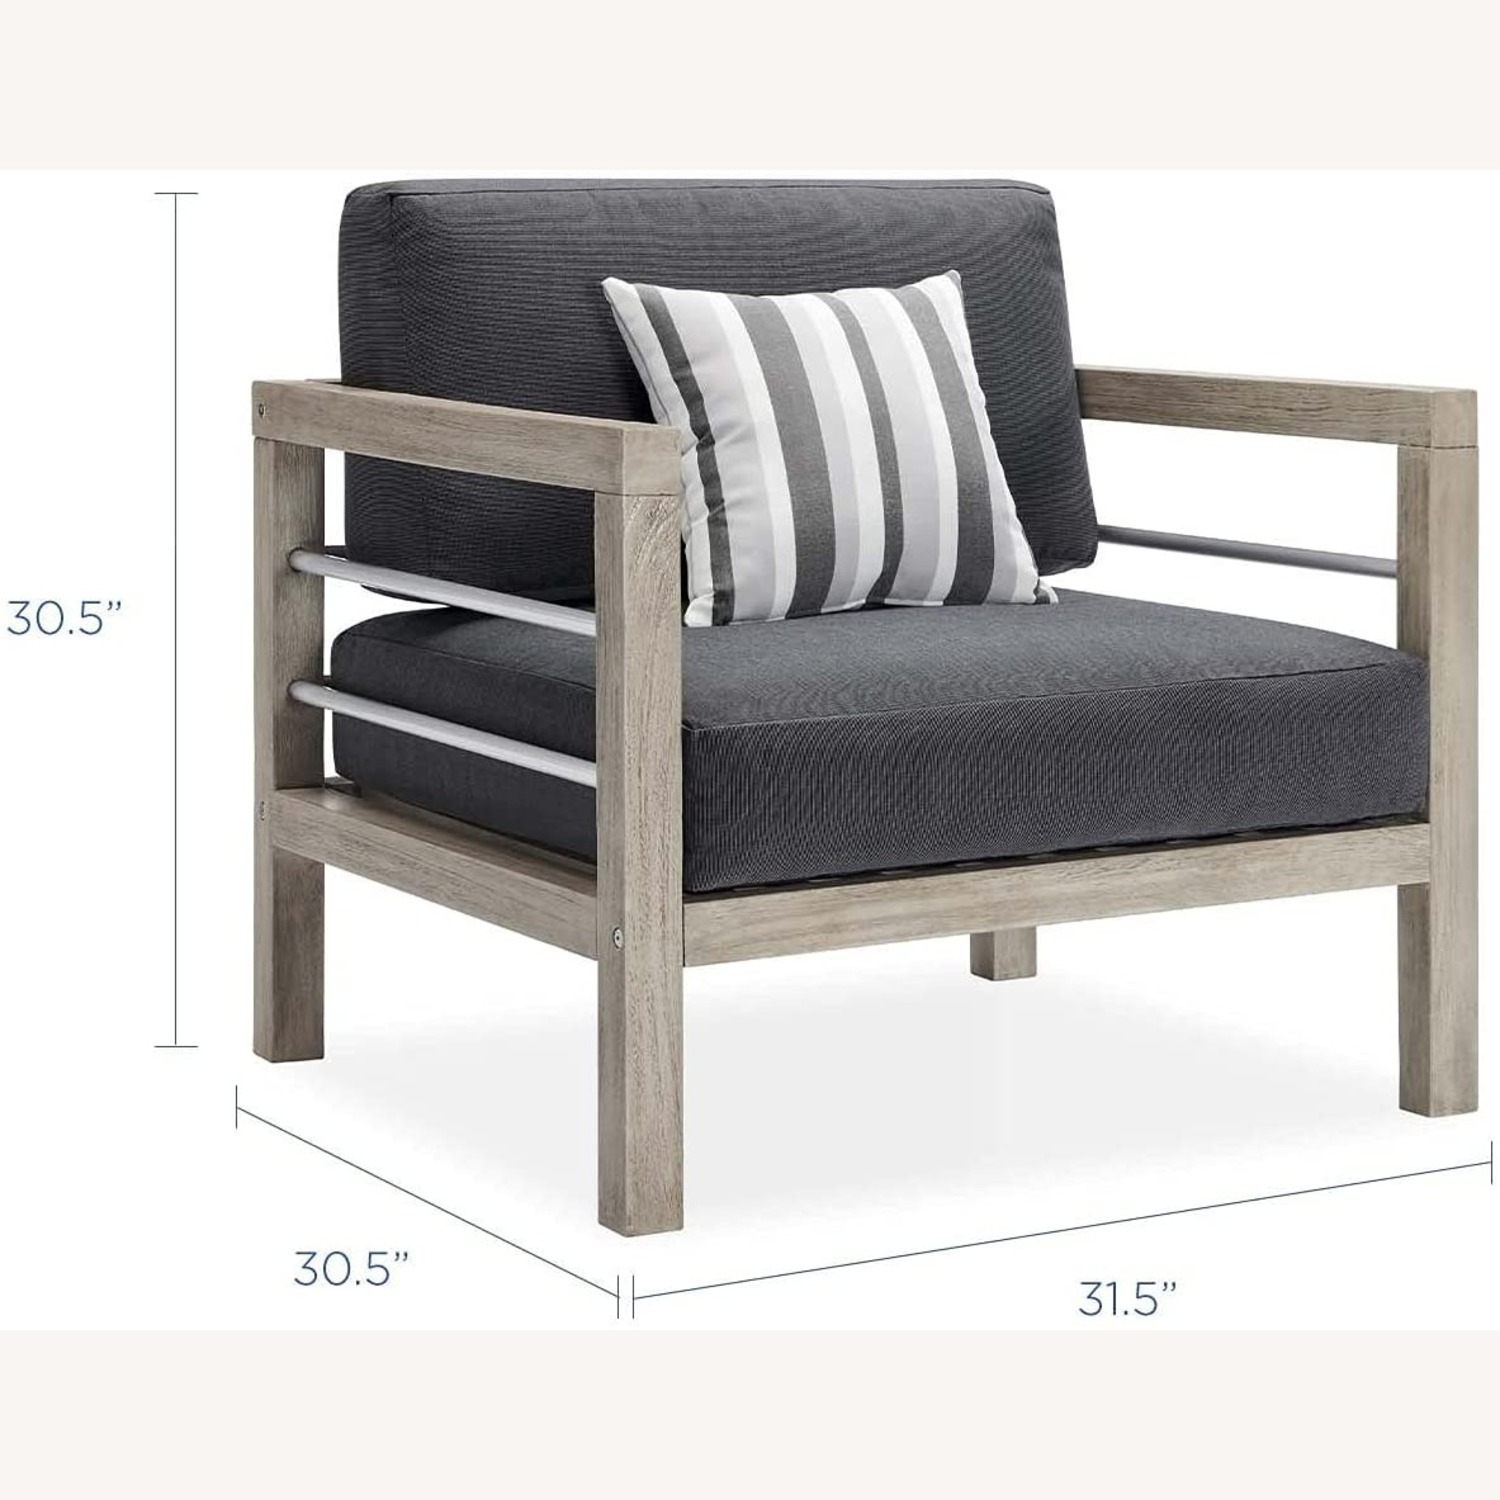 Outdoor Patio Set In Light Gray Wood Finish - image-6